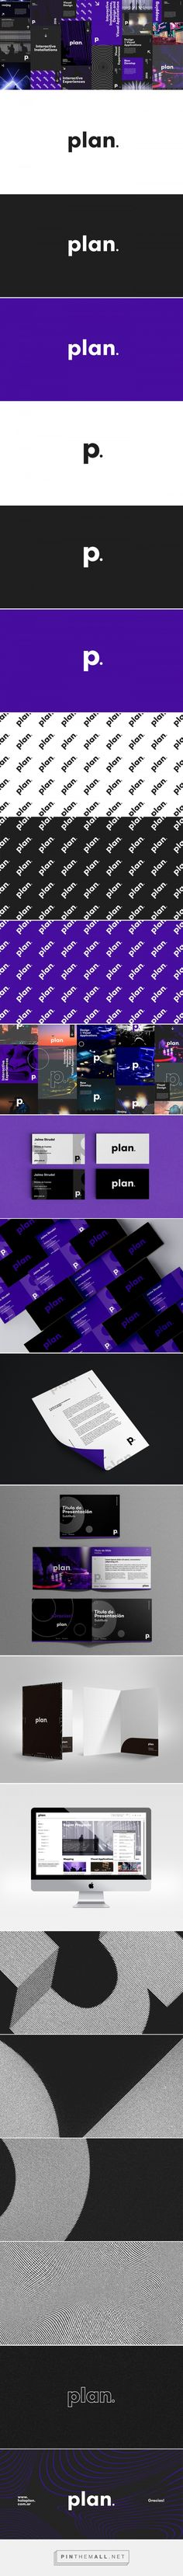 Plan. on Behance... - a grouped images picture - Pin Them All